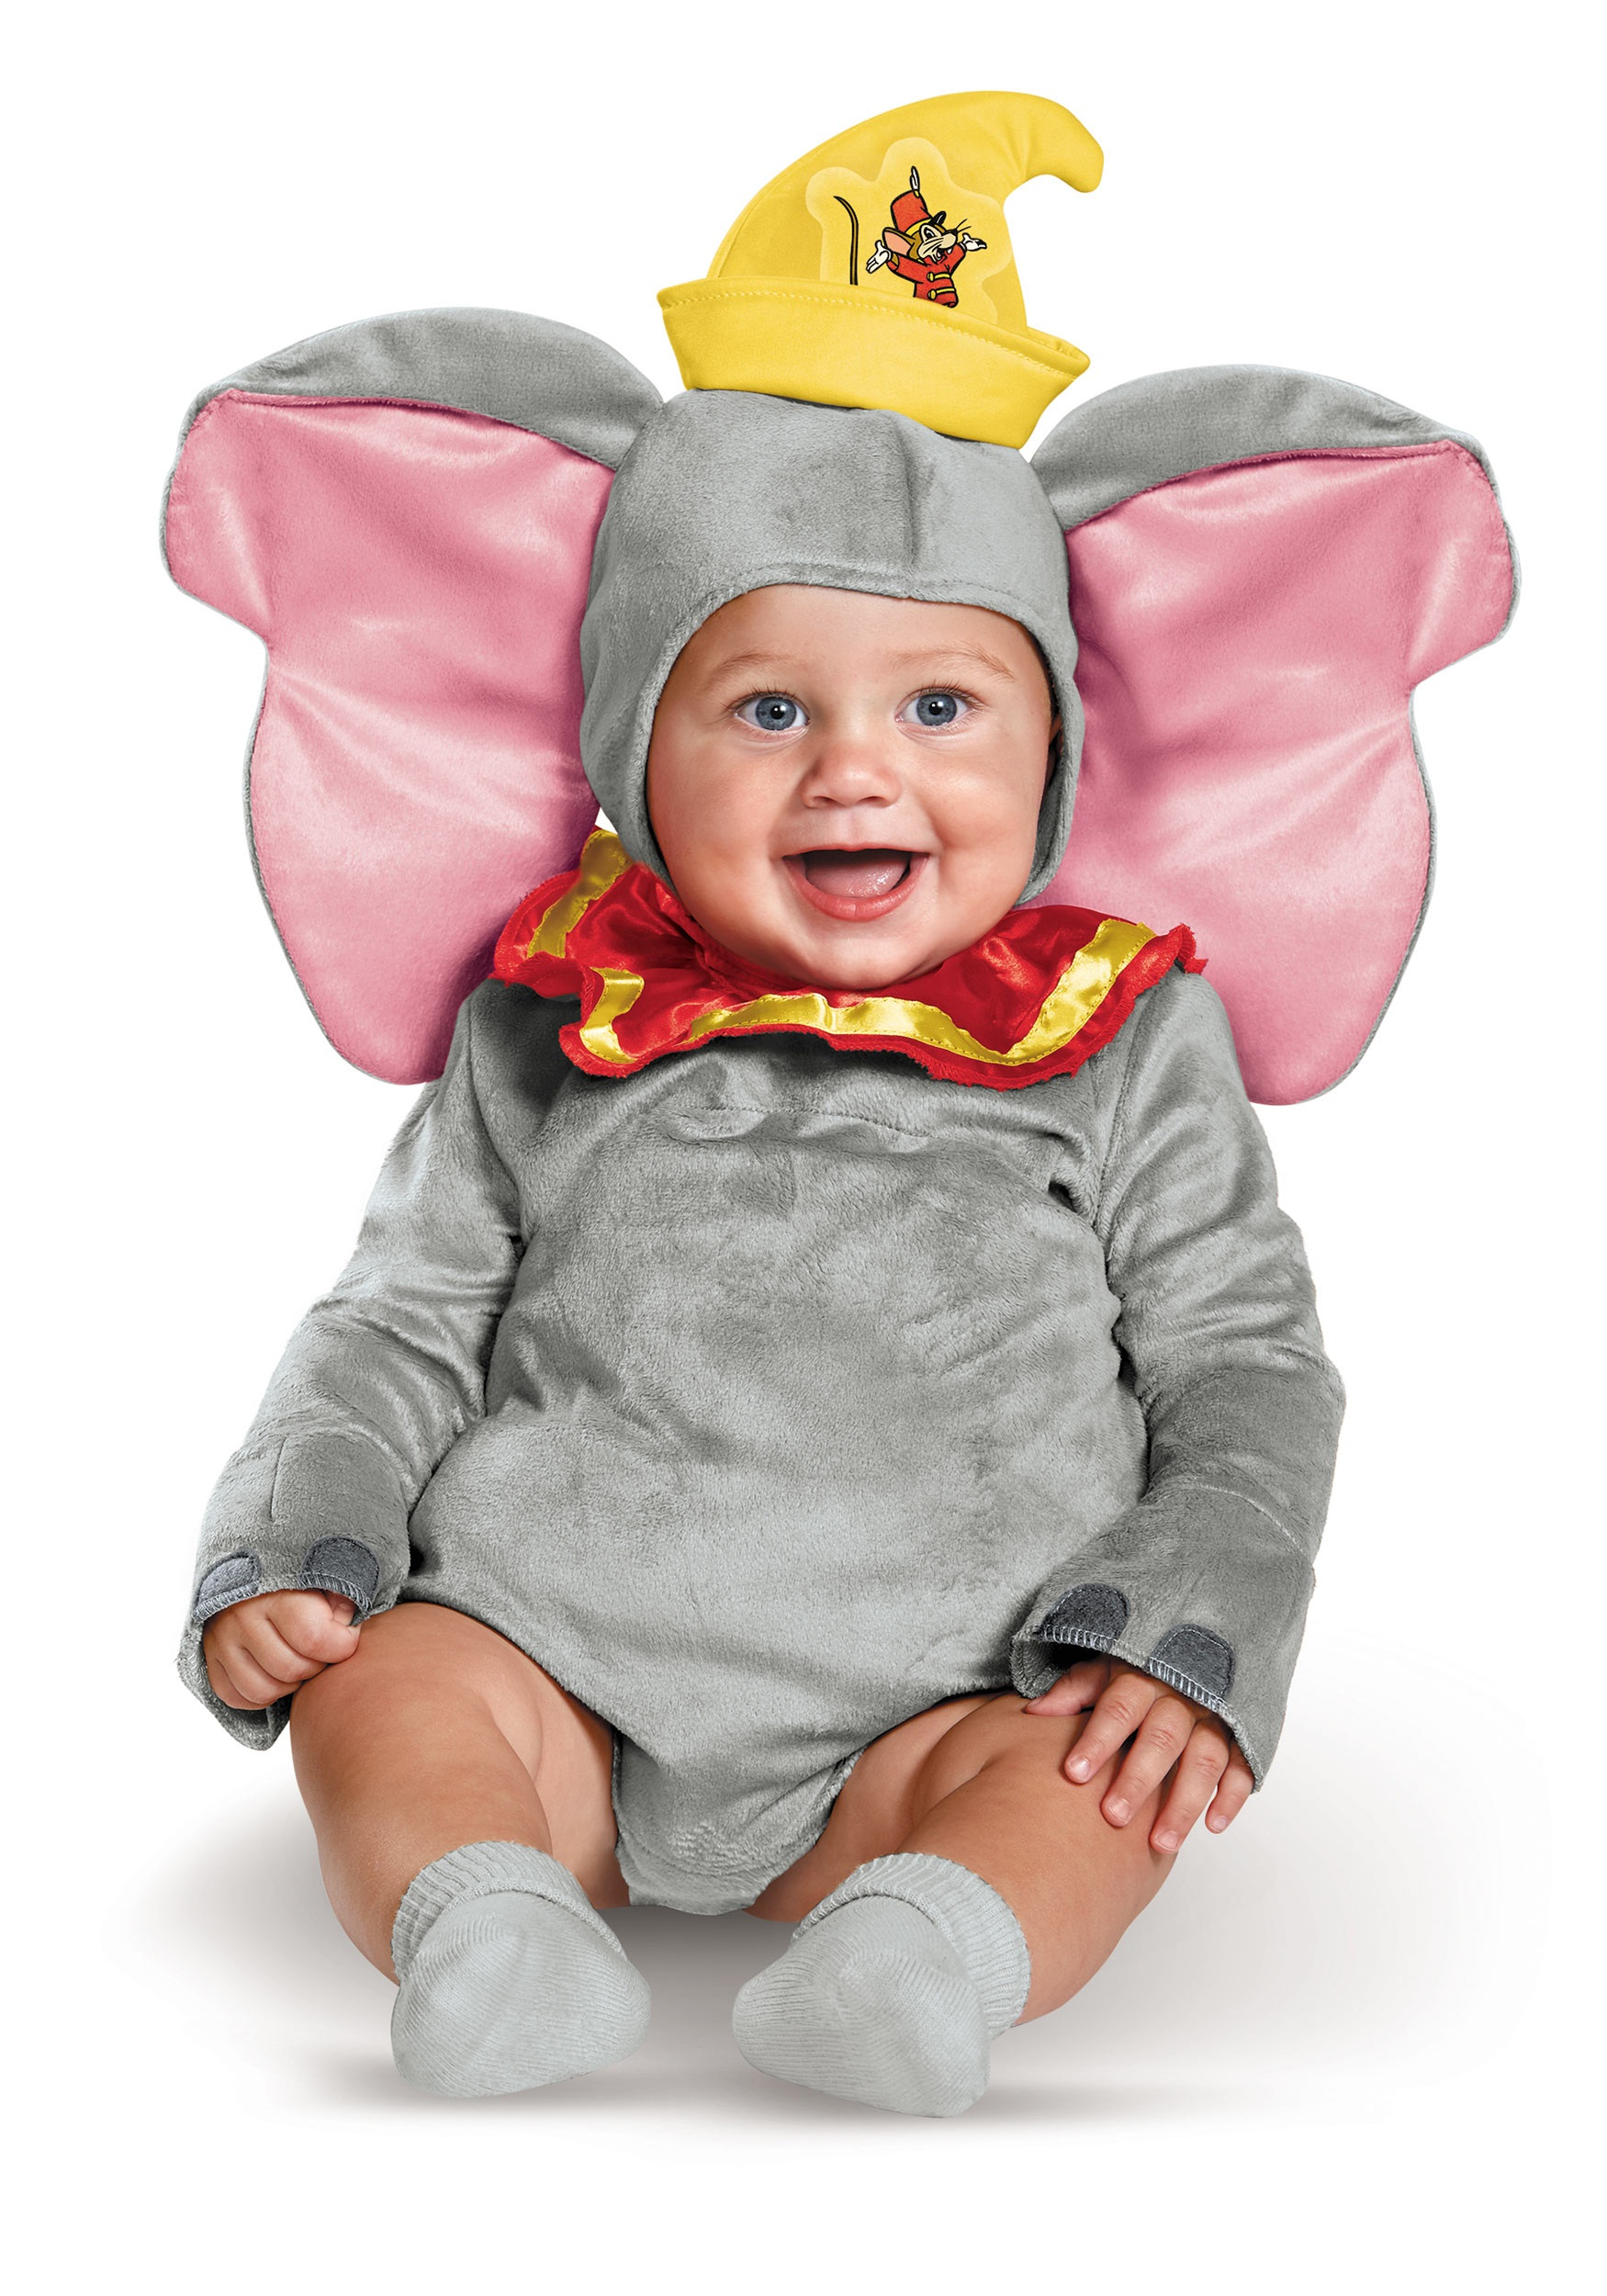 Baby Disney Costumes. Choosing you baby's first Halloween costume is always the most difficult, but obviously you want them to look absolutely adorable in whatever baby costume they wear! Dress them in one of our baby Disney costumes and they'll bring .